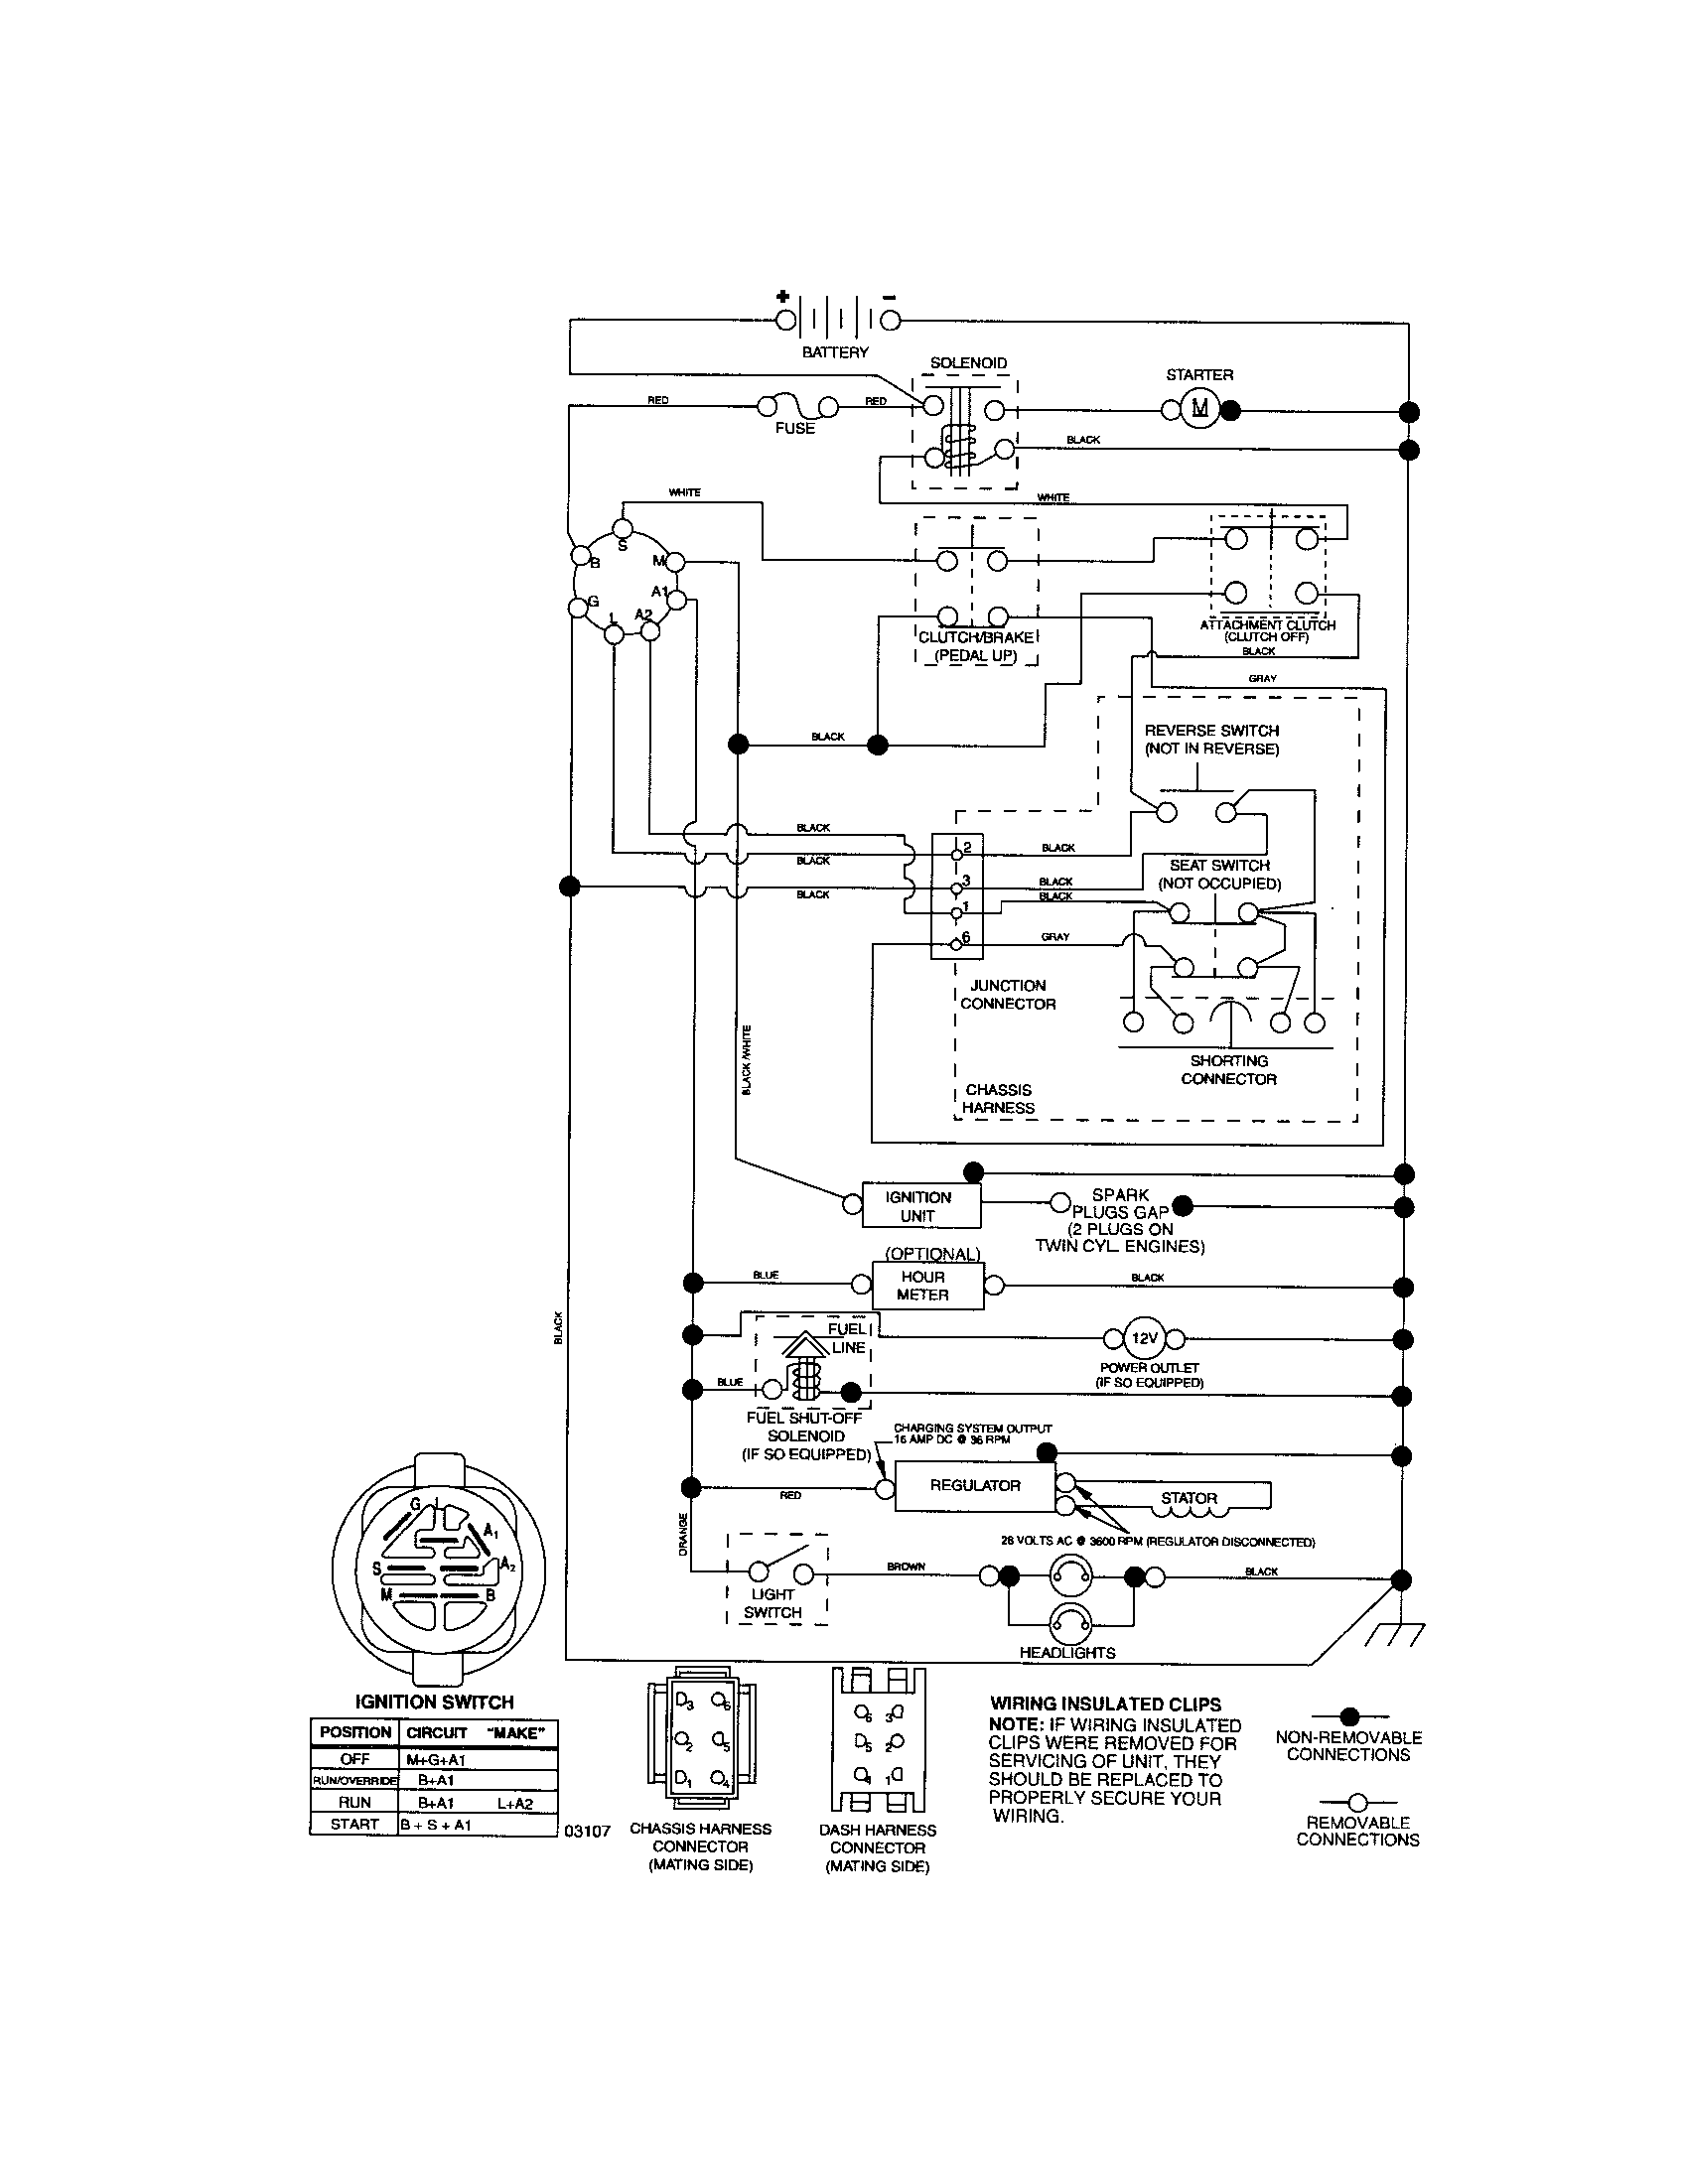 6af5f1447fd13c8443376822ddc1e105 craftsman riding mower electrical diagram wiring diagram need a wiring diagram at fashall.co